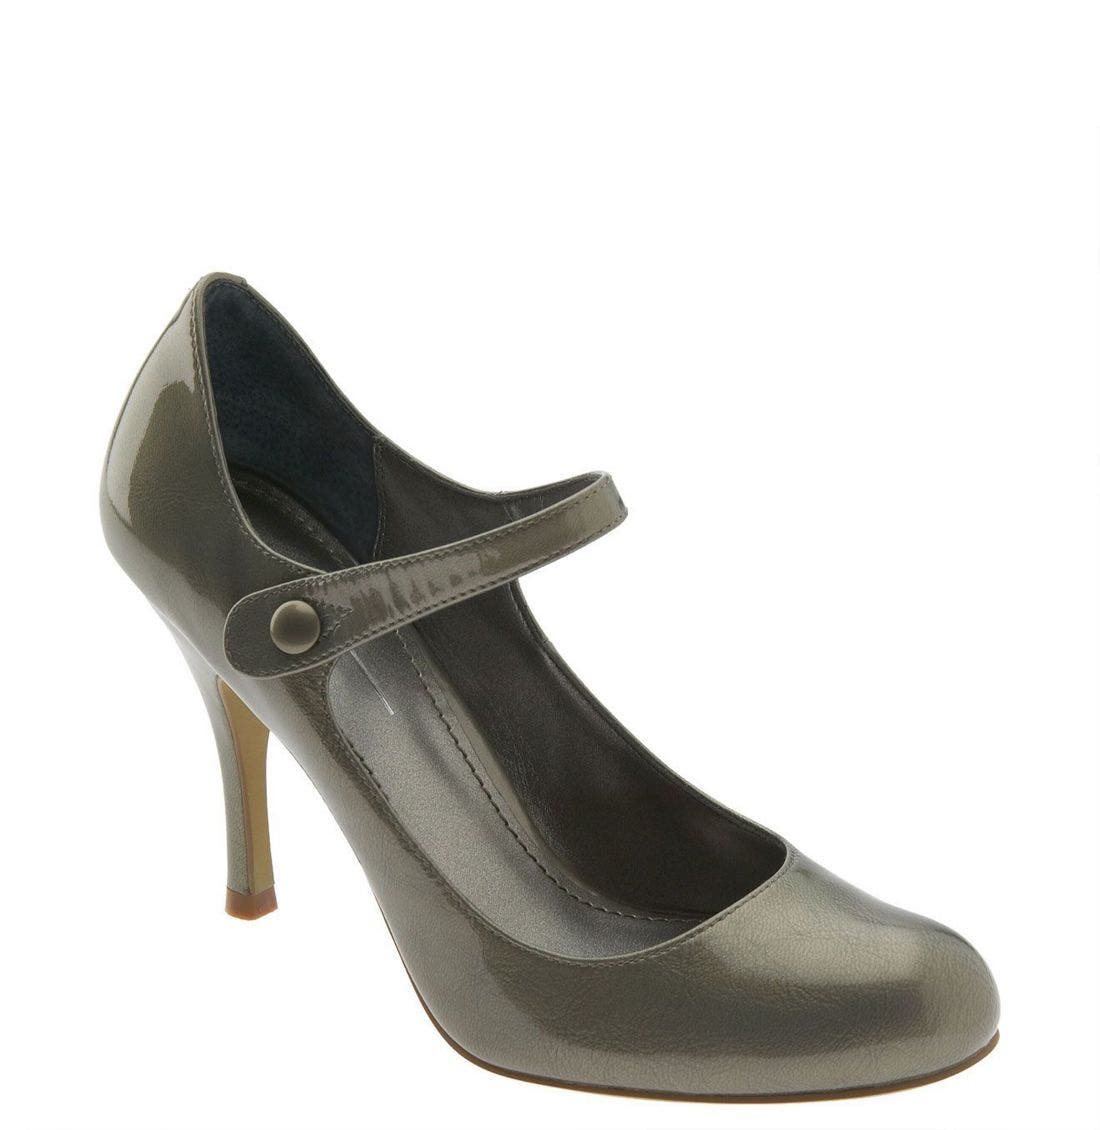 Main Image - Linea Paolo 'Zara' Patent Leather Mary Jane Pump